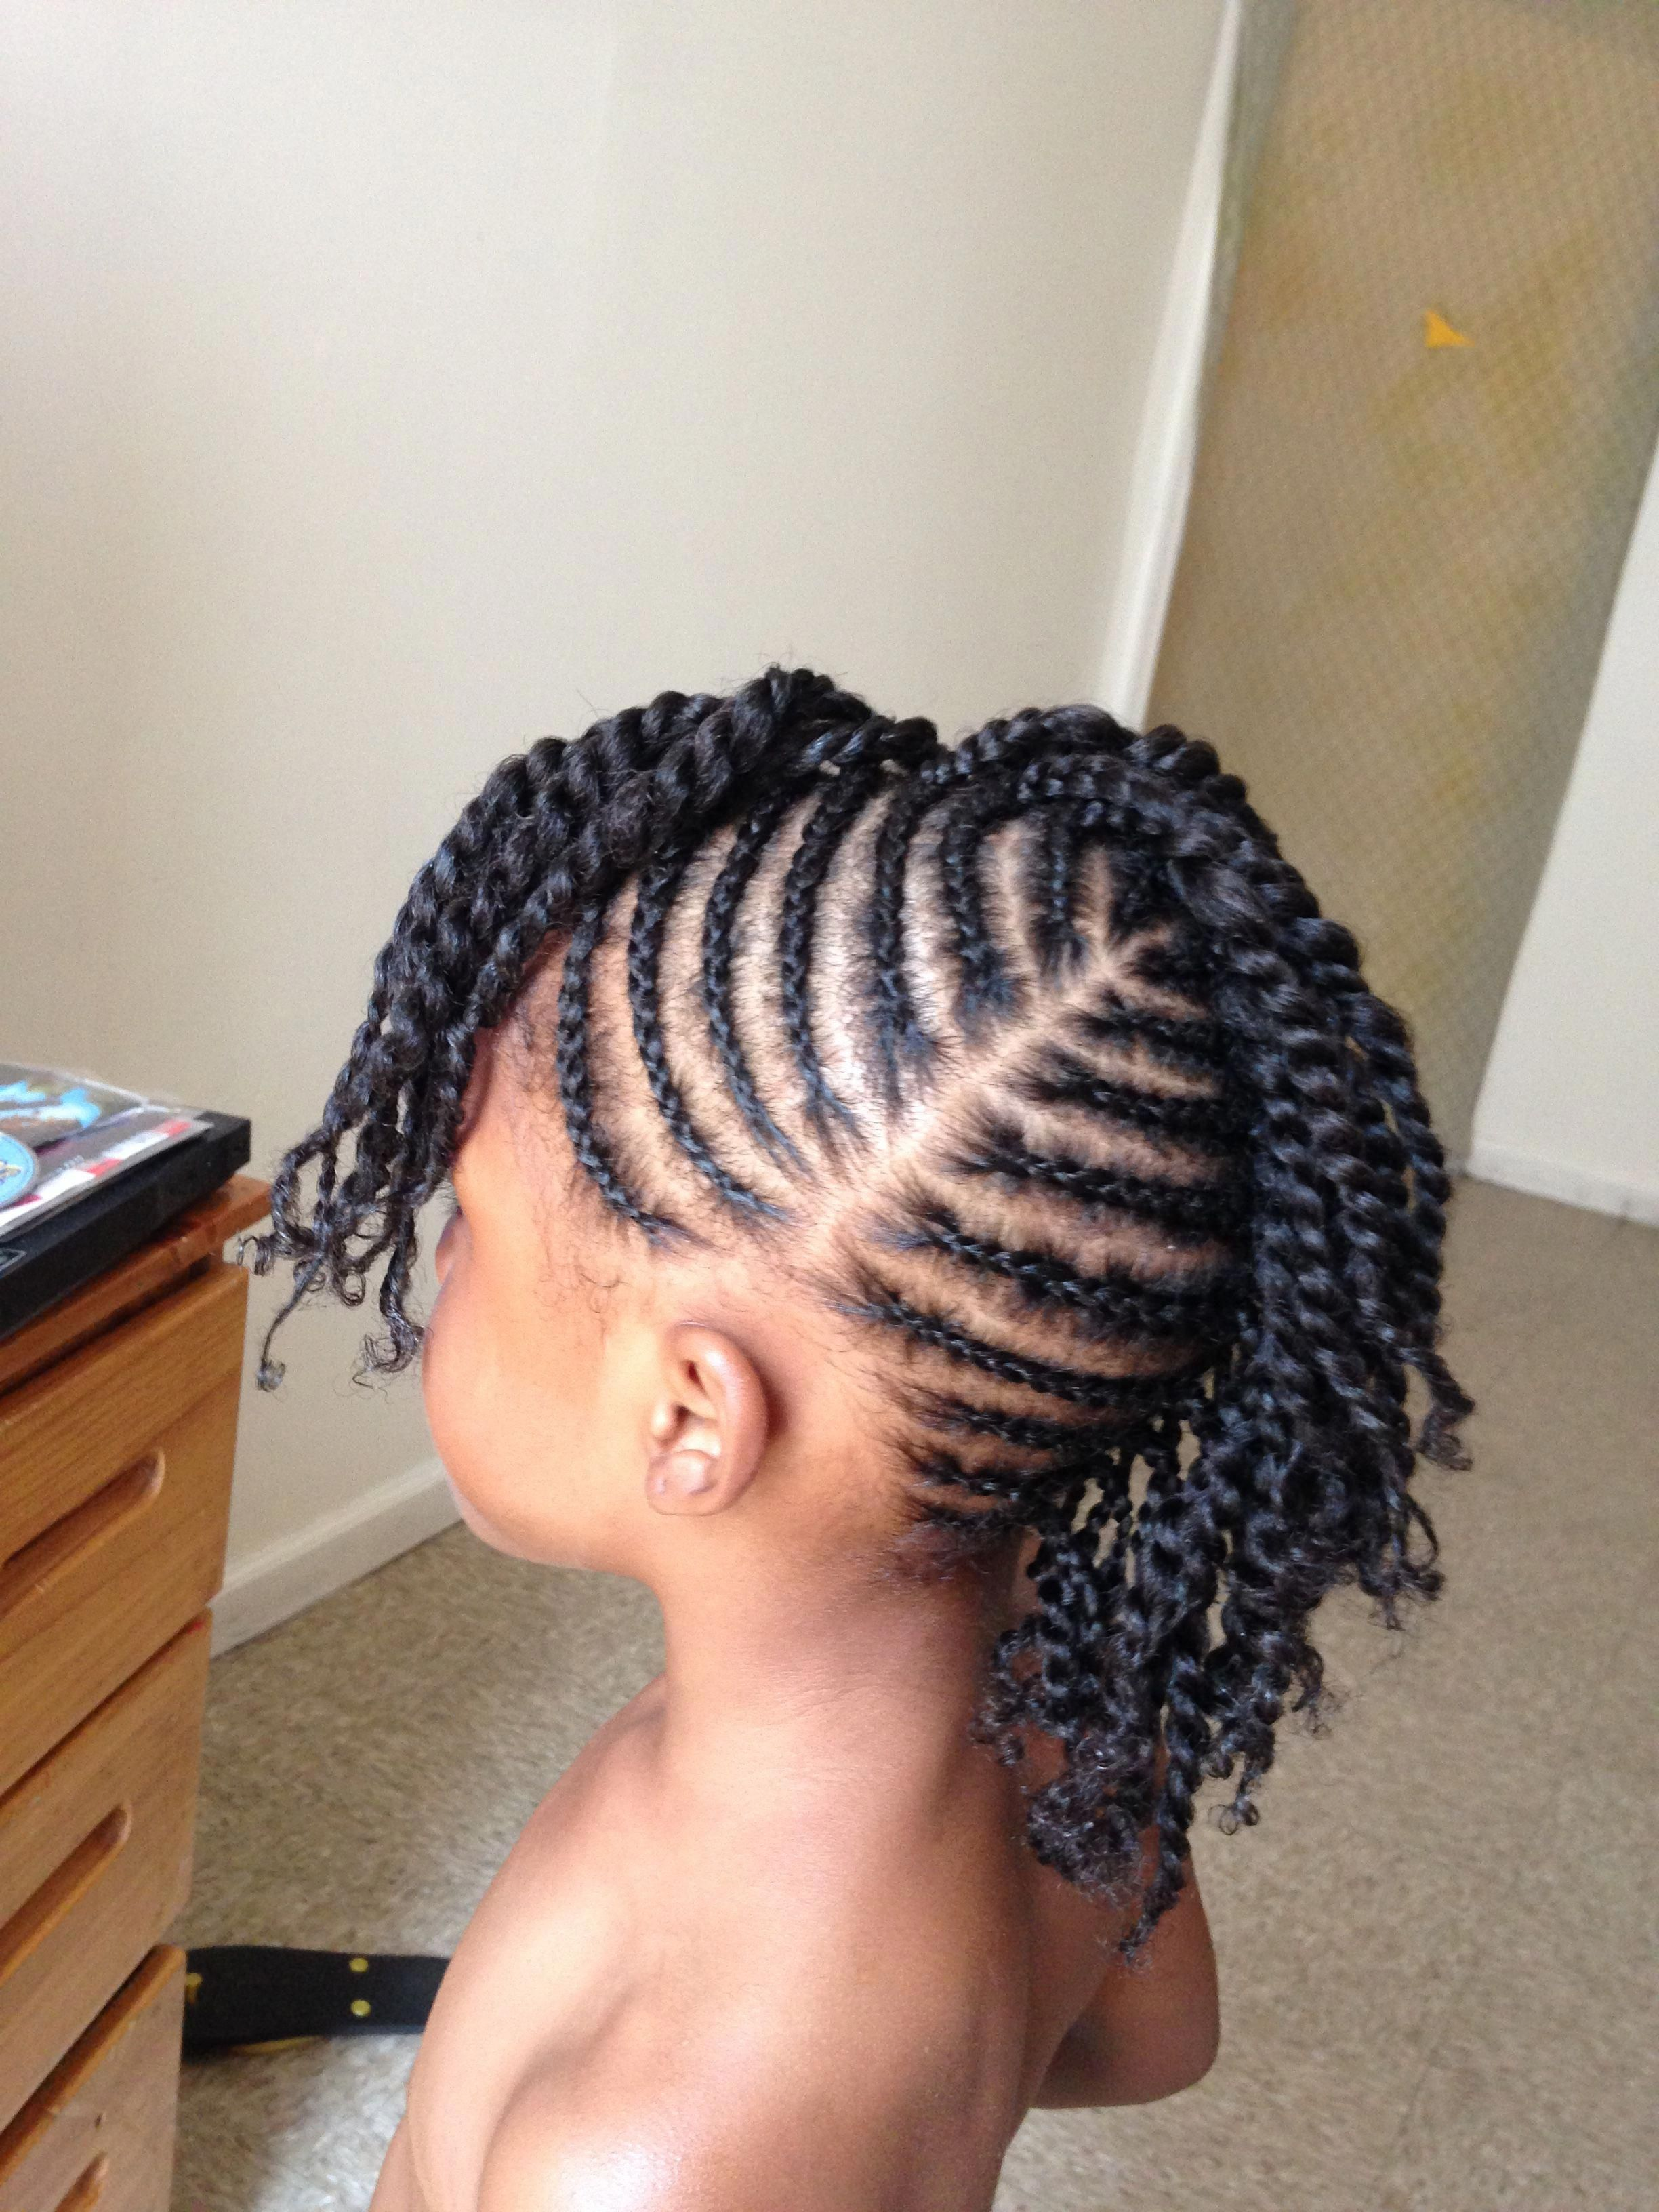 Quick Easy Hairstyles Image 287 Quickeasyhairstyles Naturalhairstyles Hair Styles Girls Braided Hairstyles Kids Easy Hairstyles